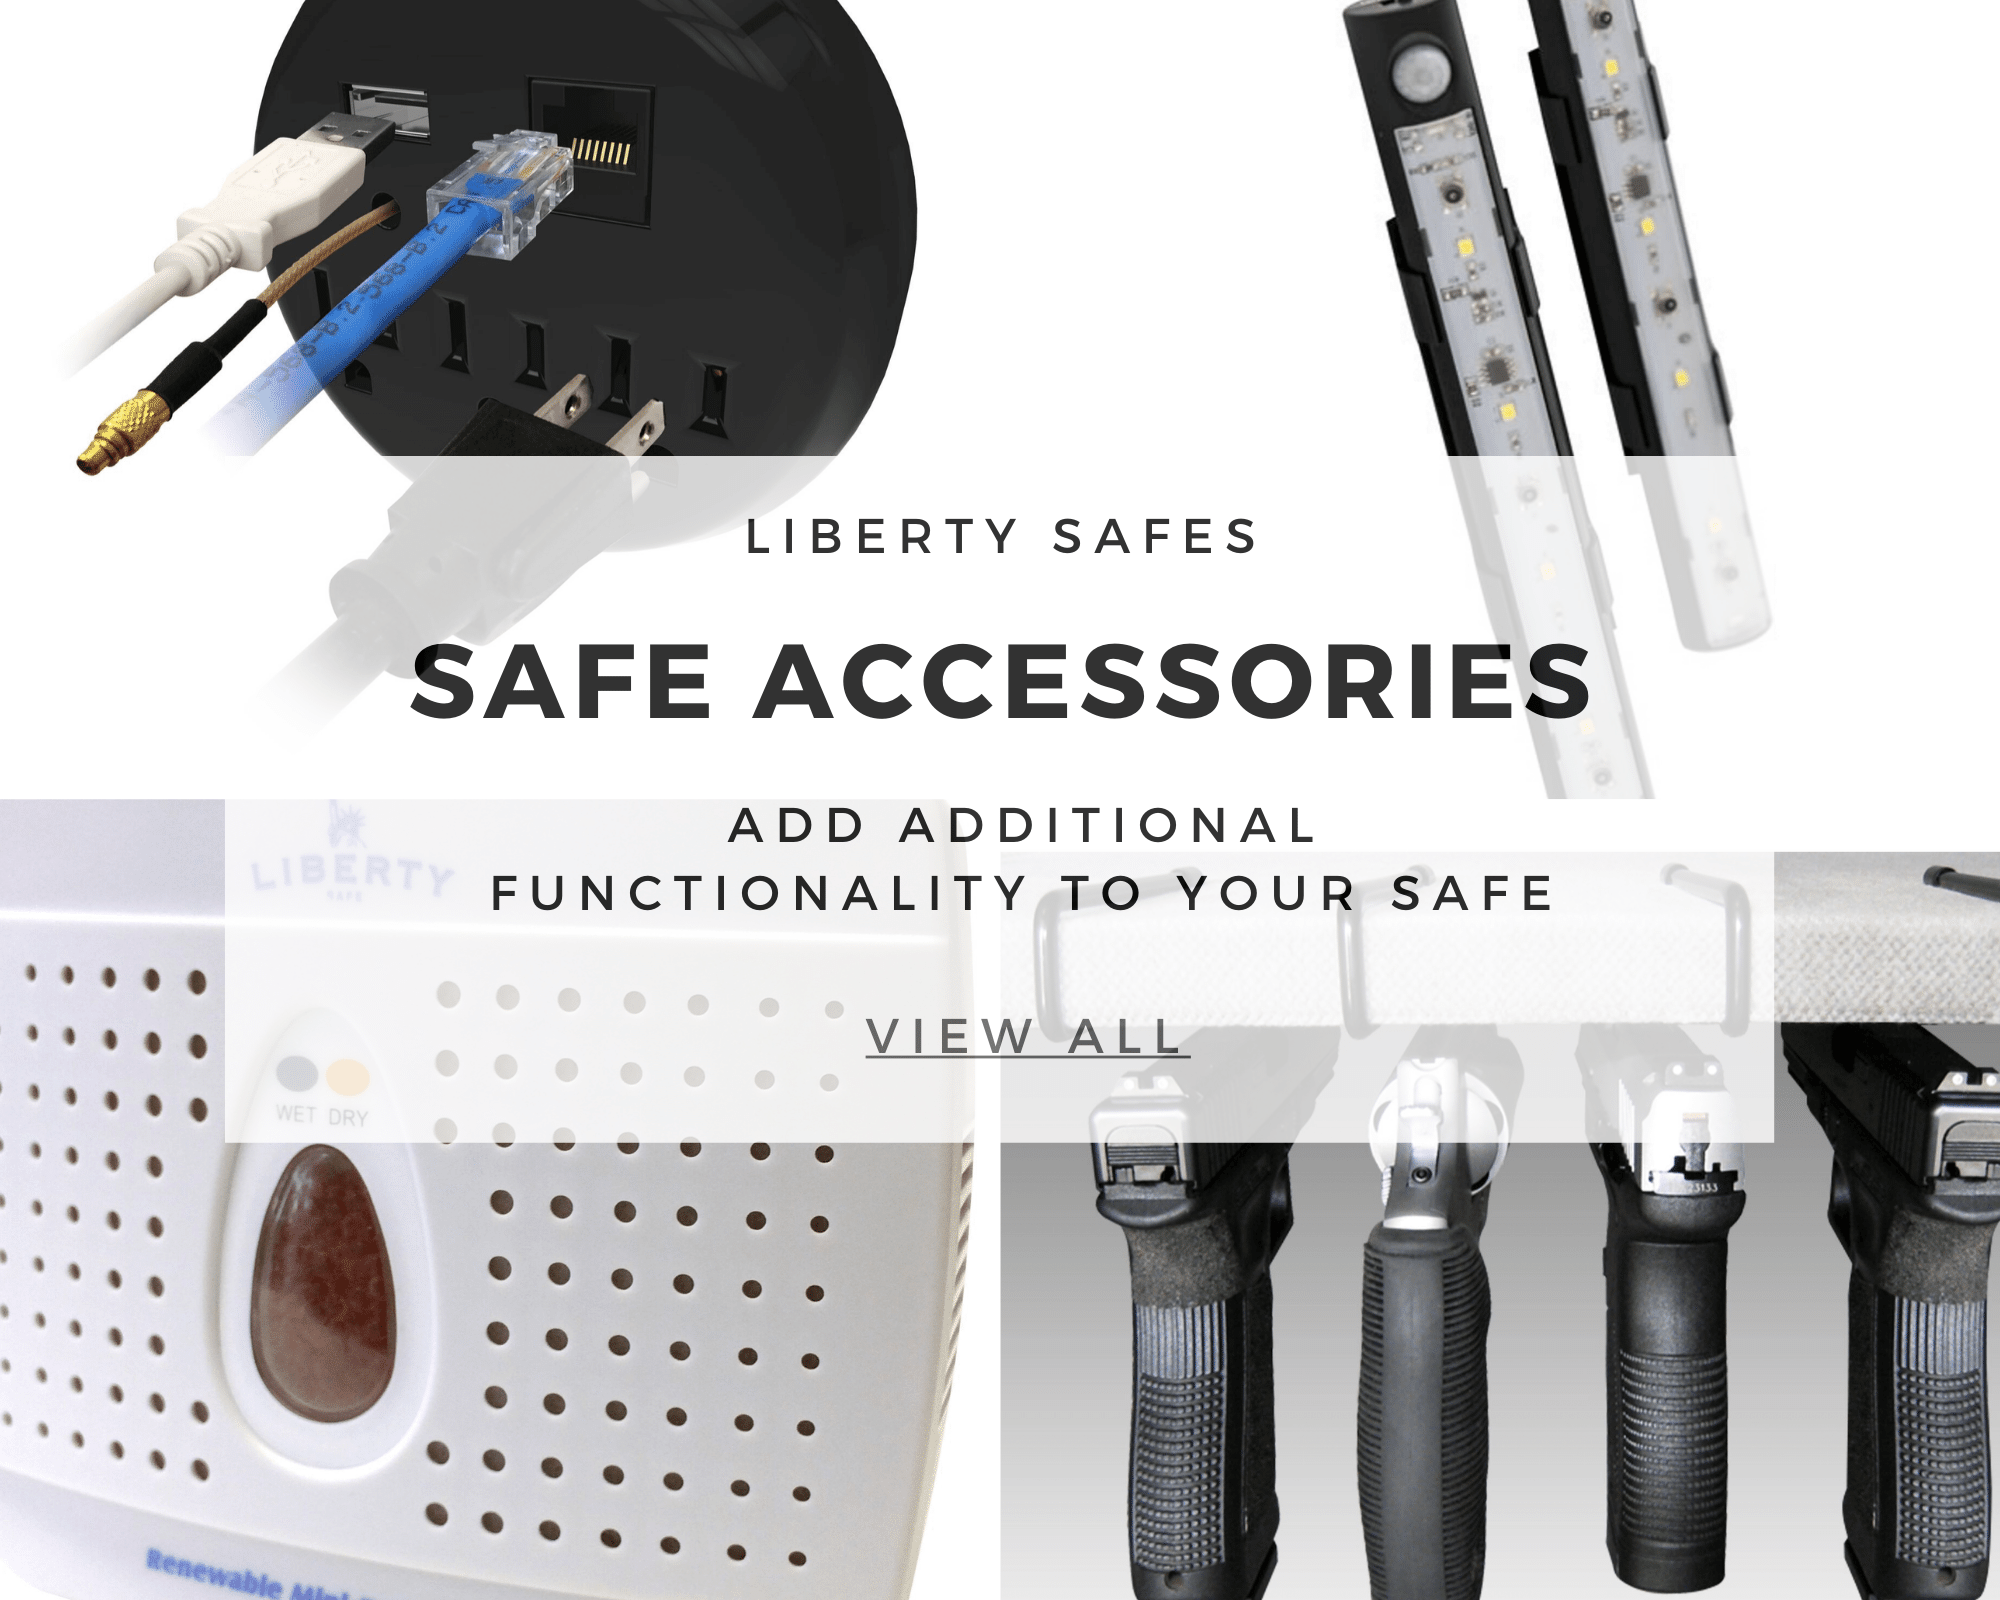 Safe accessories add additional functionality to your safe